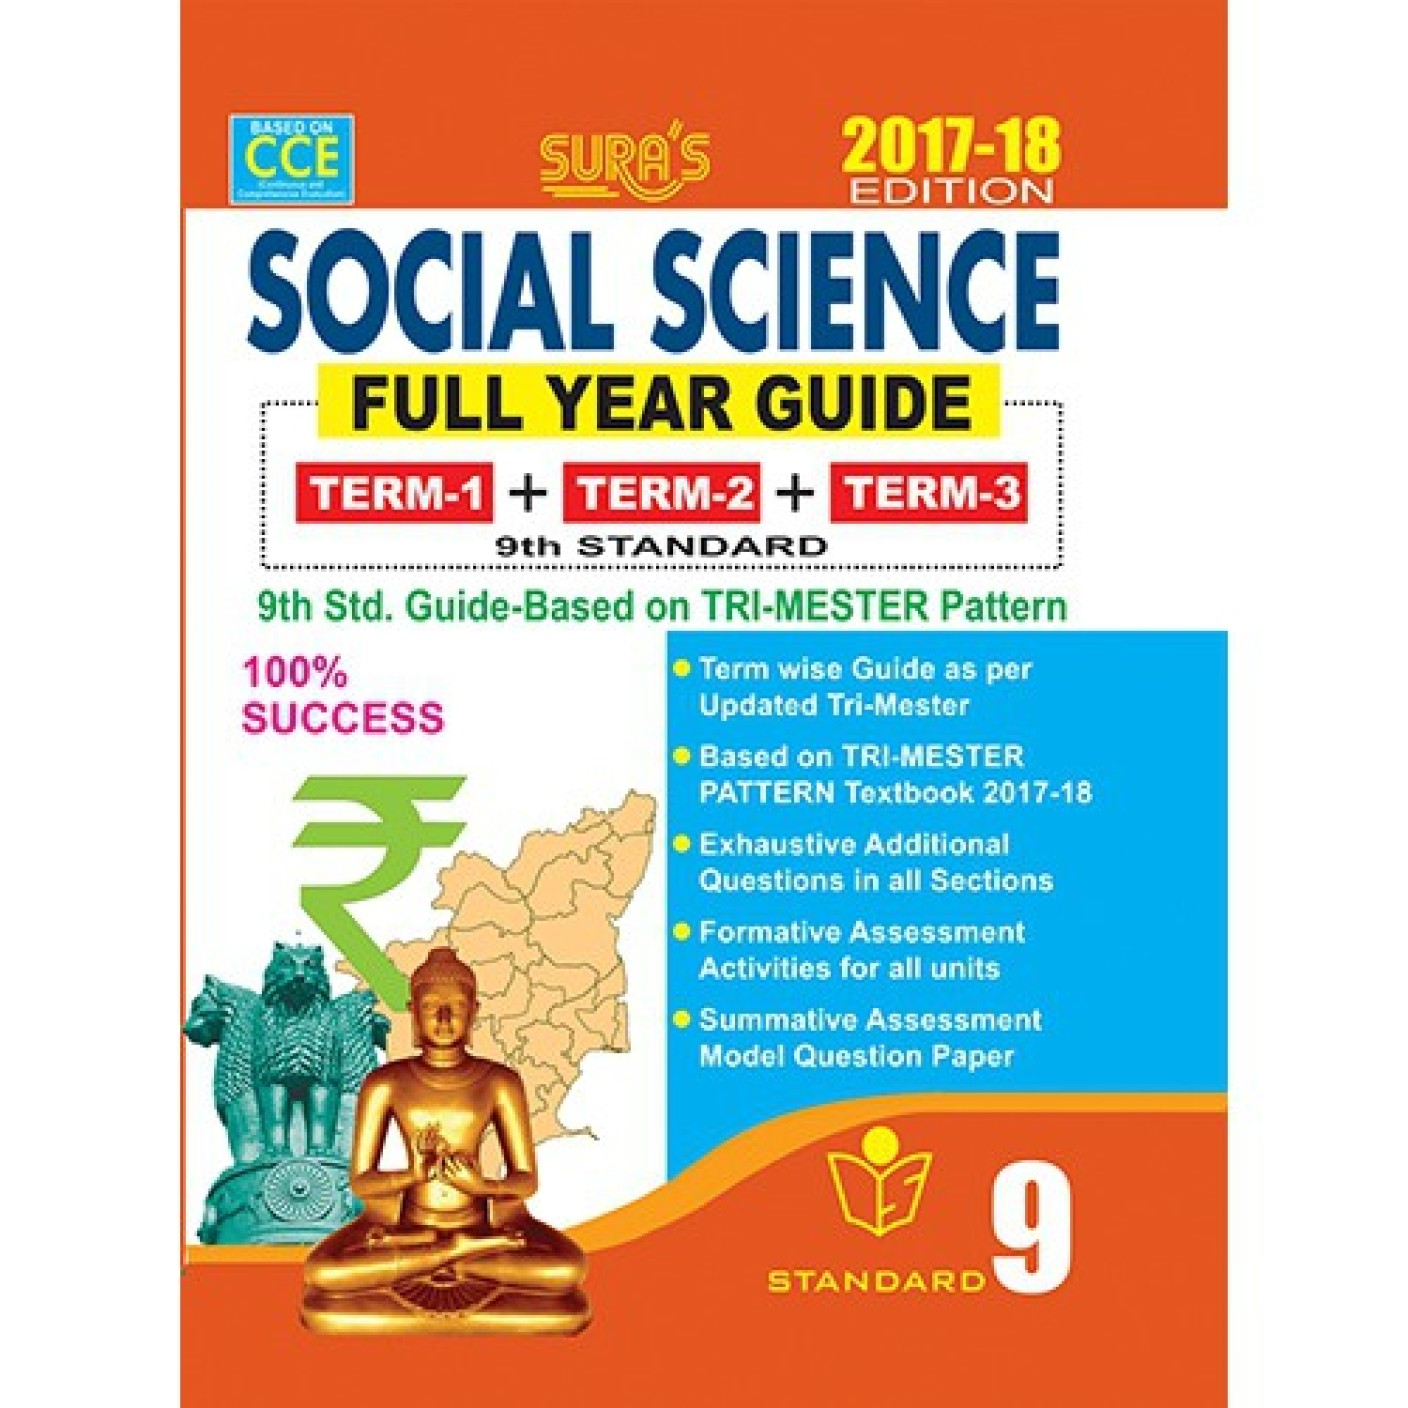 social science information Physorg provides the latest news on social sciences, history, political science, psychology and sociology.